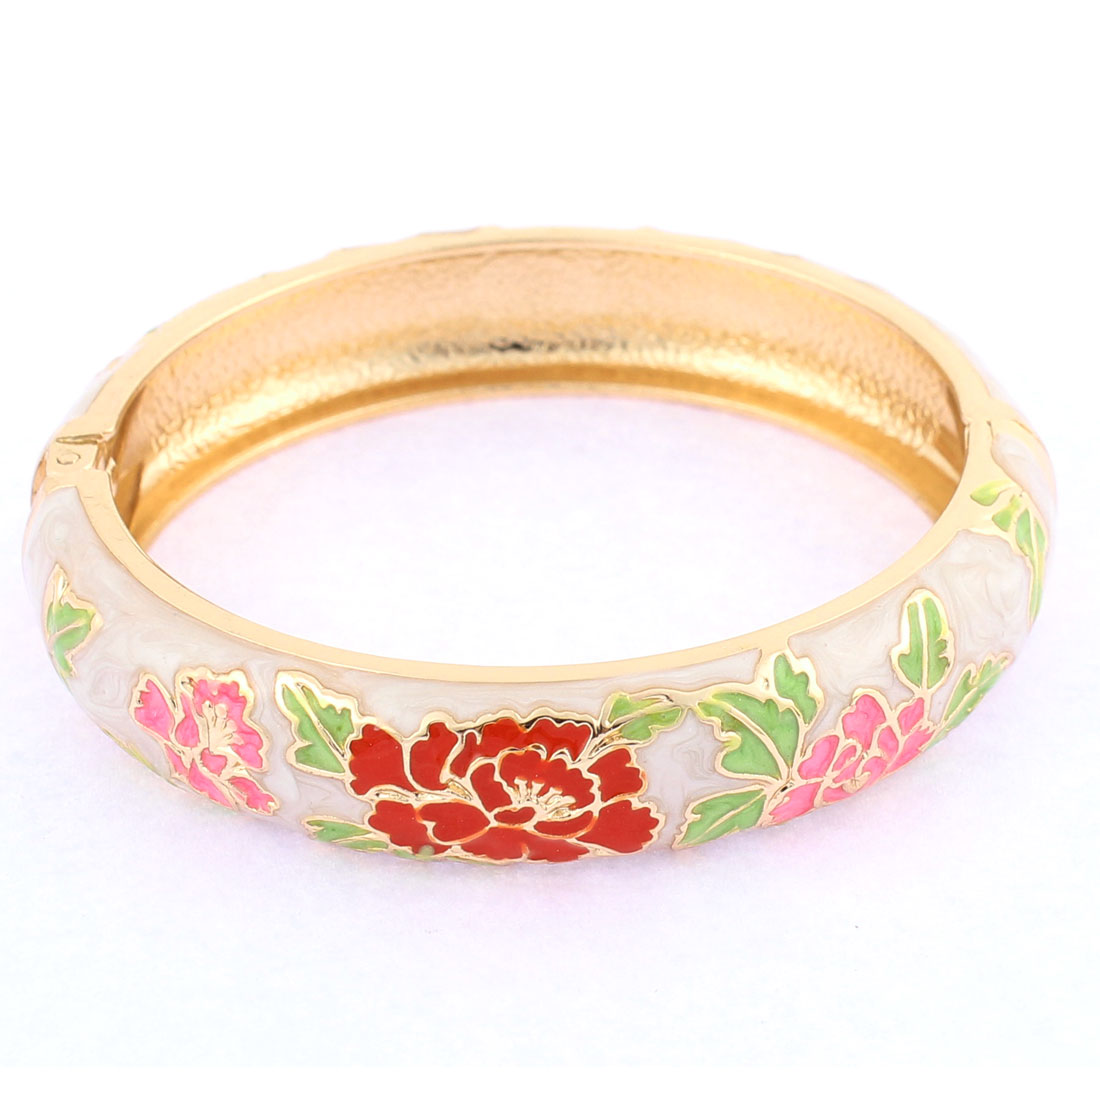 Lady Spring Closure Flower Enamel Round Bracelet Bangle Jewelry Party Gift Beige